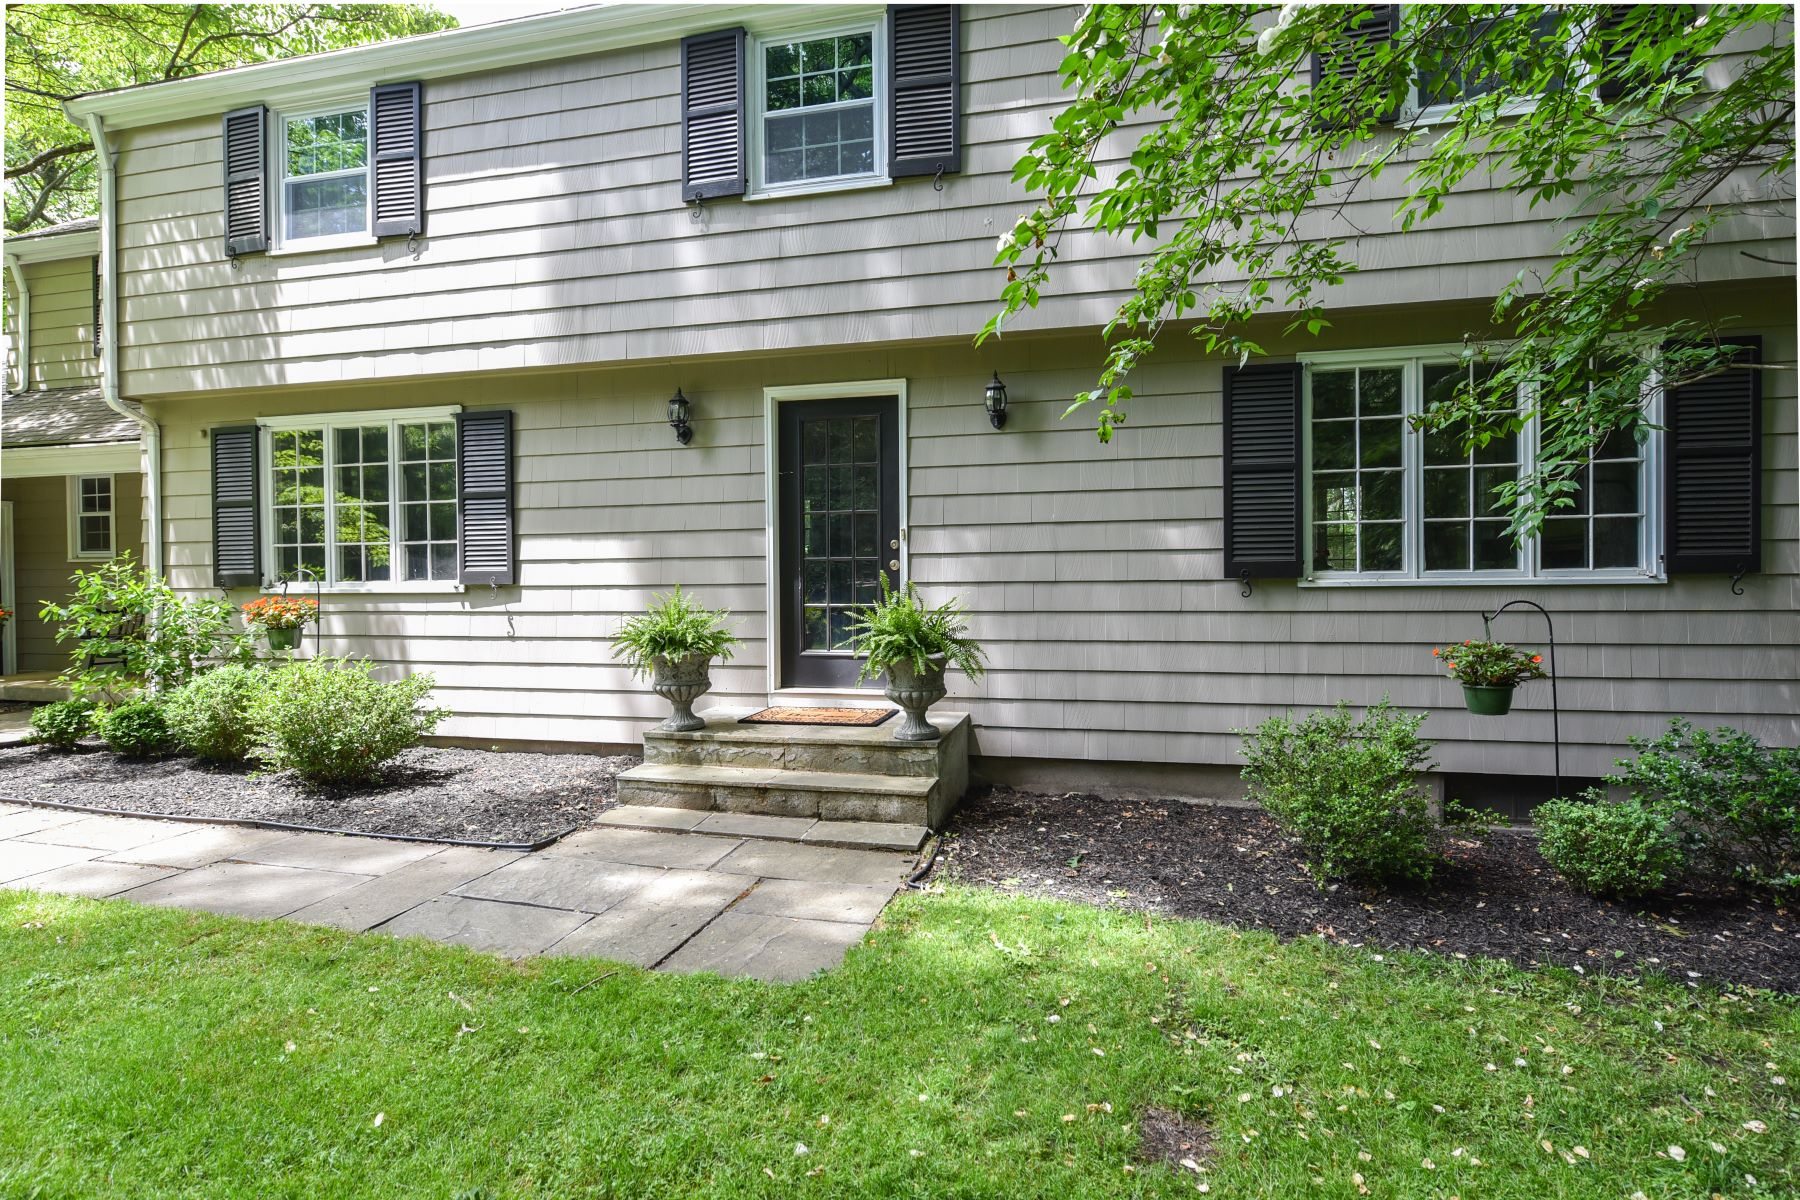 Single Family Homes for Sale at 11 Highwood Drive Avon, Connecticut 06001 United States